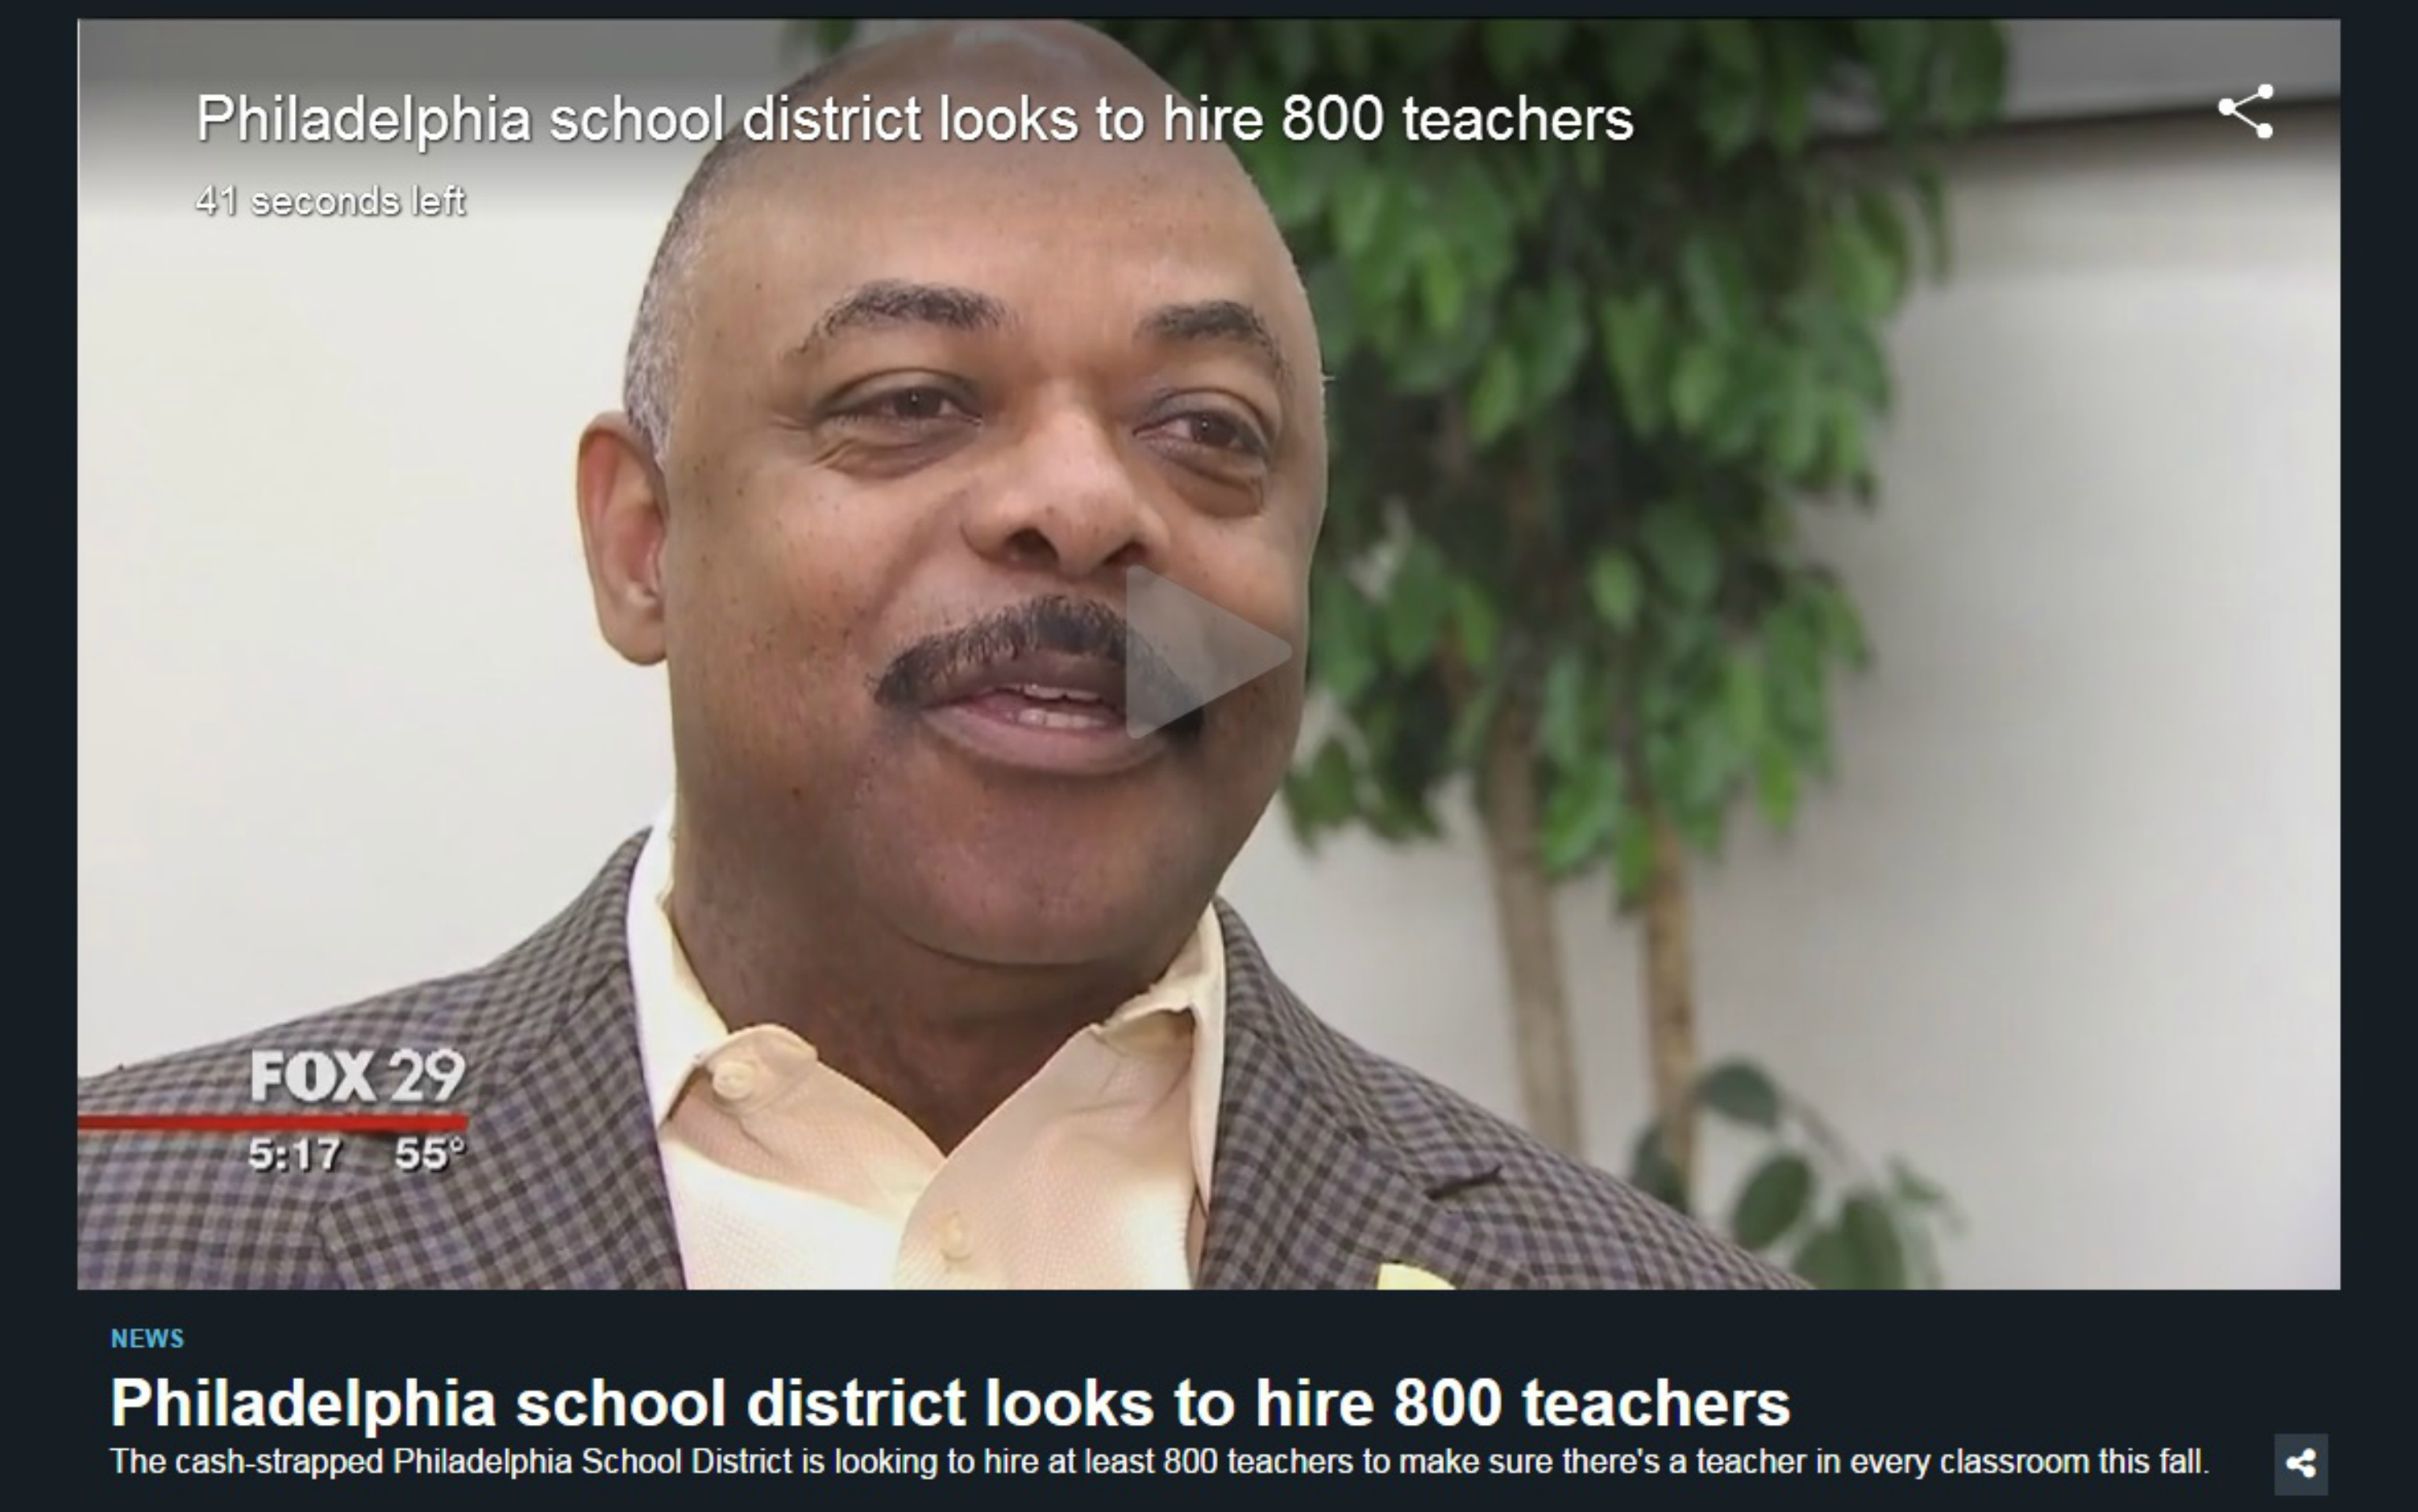 Eastfallslocal resize Video screenshot school district hiring 800 teachers